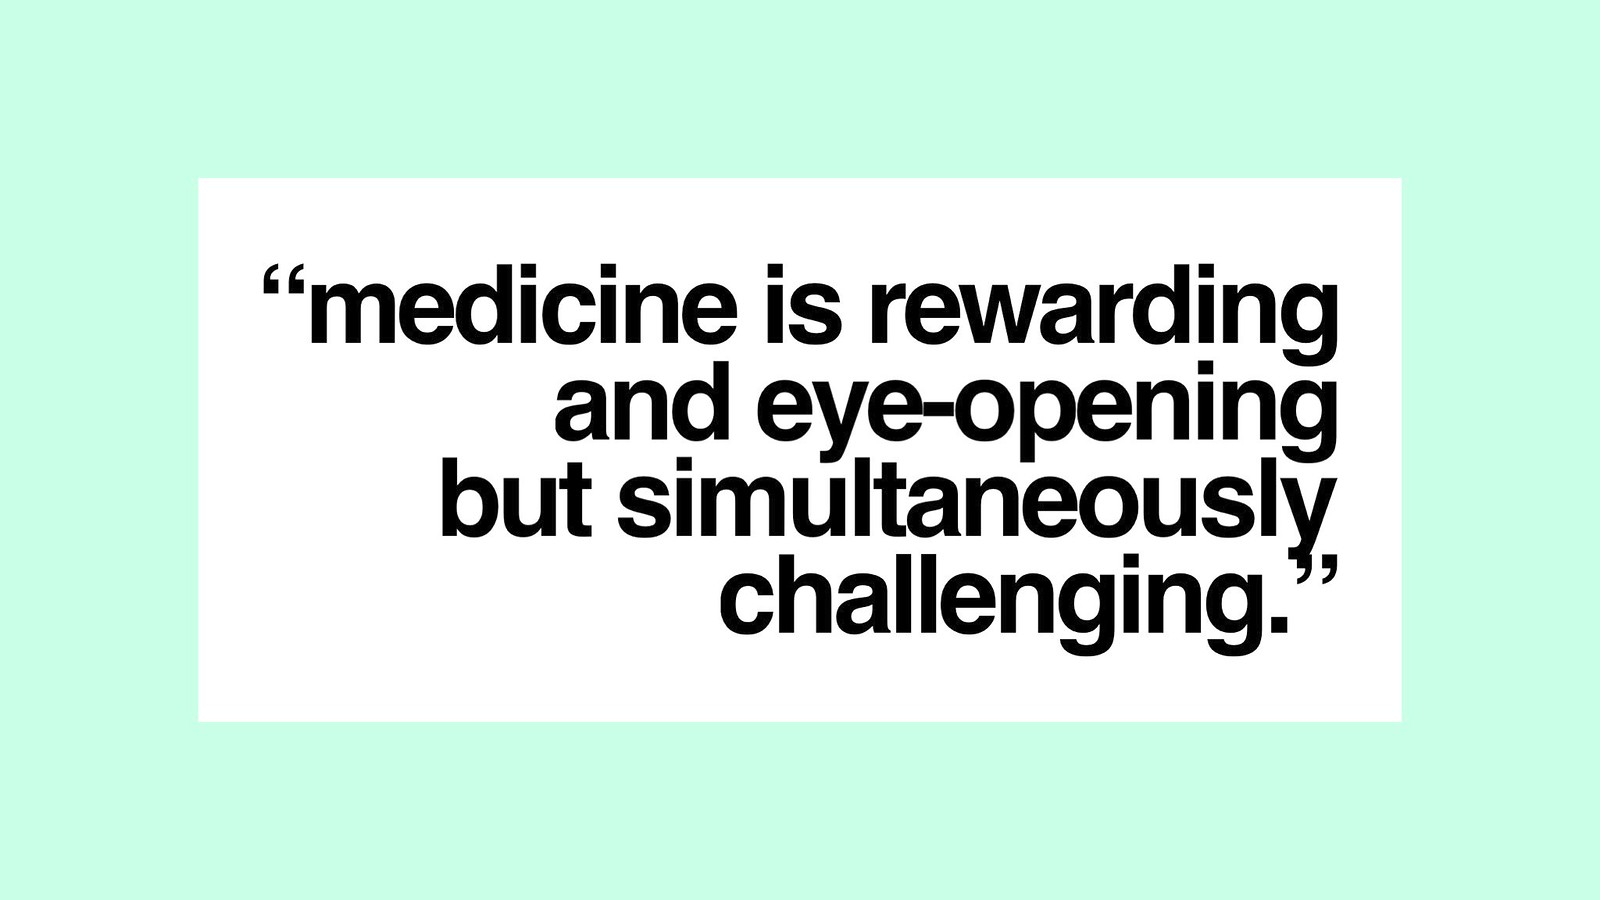 Medicine is rewarding and eye-opening but simultaneously challenging.